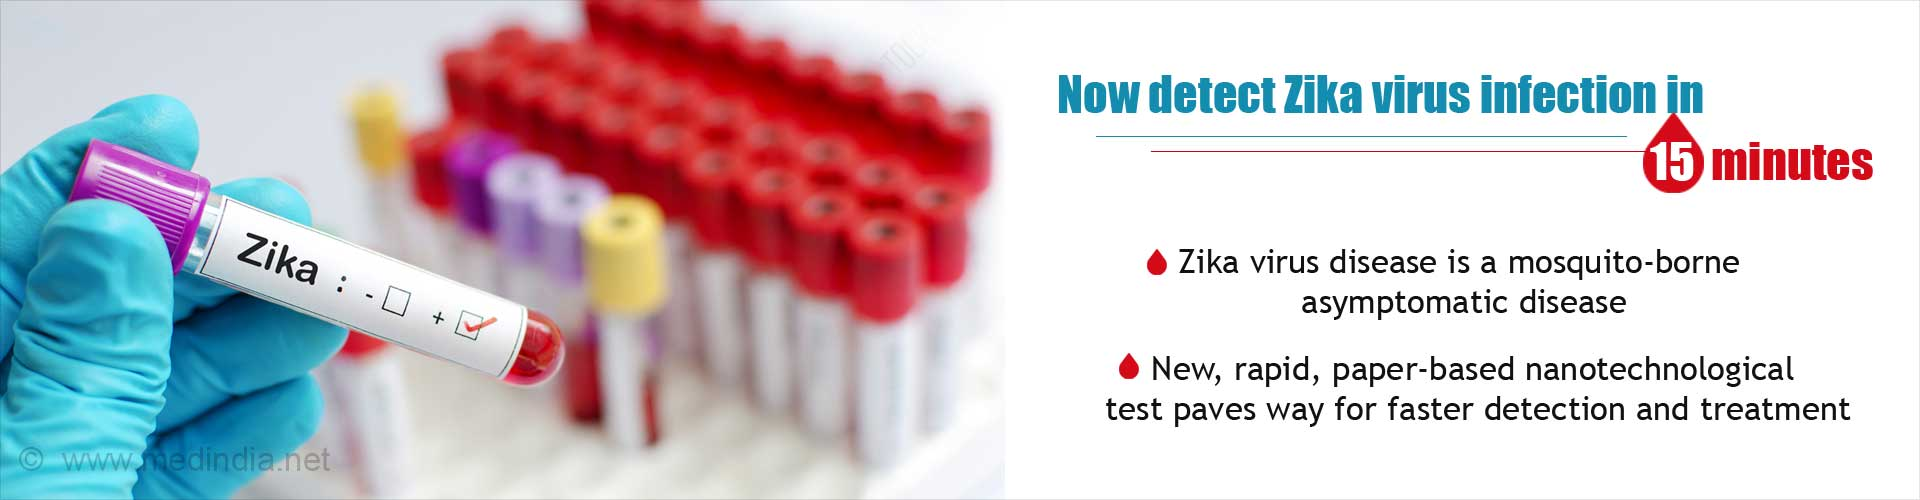 New, Rapid and Inexpensive Test for Zika Virus Detection